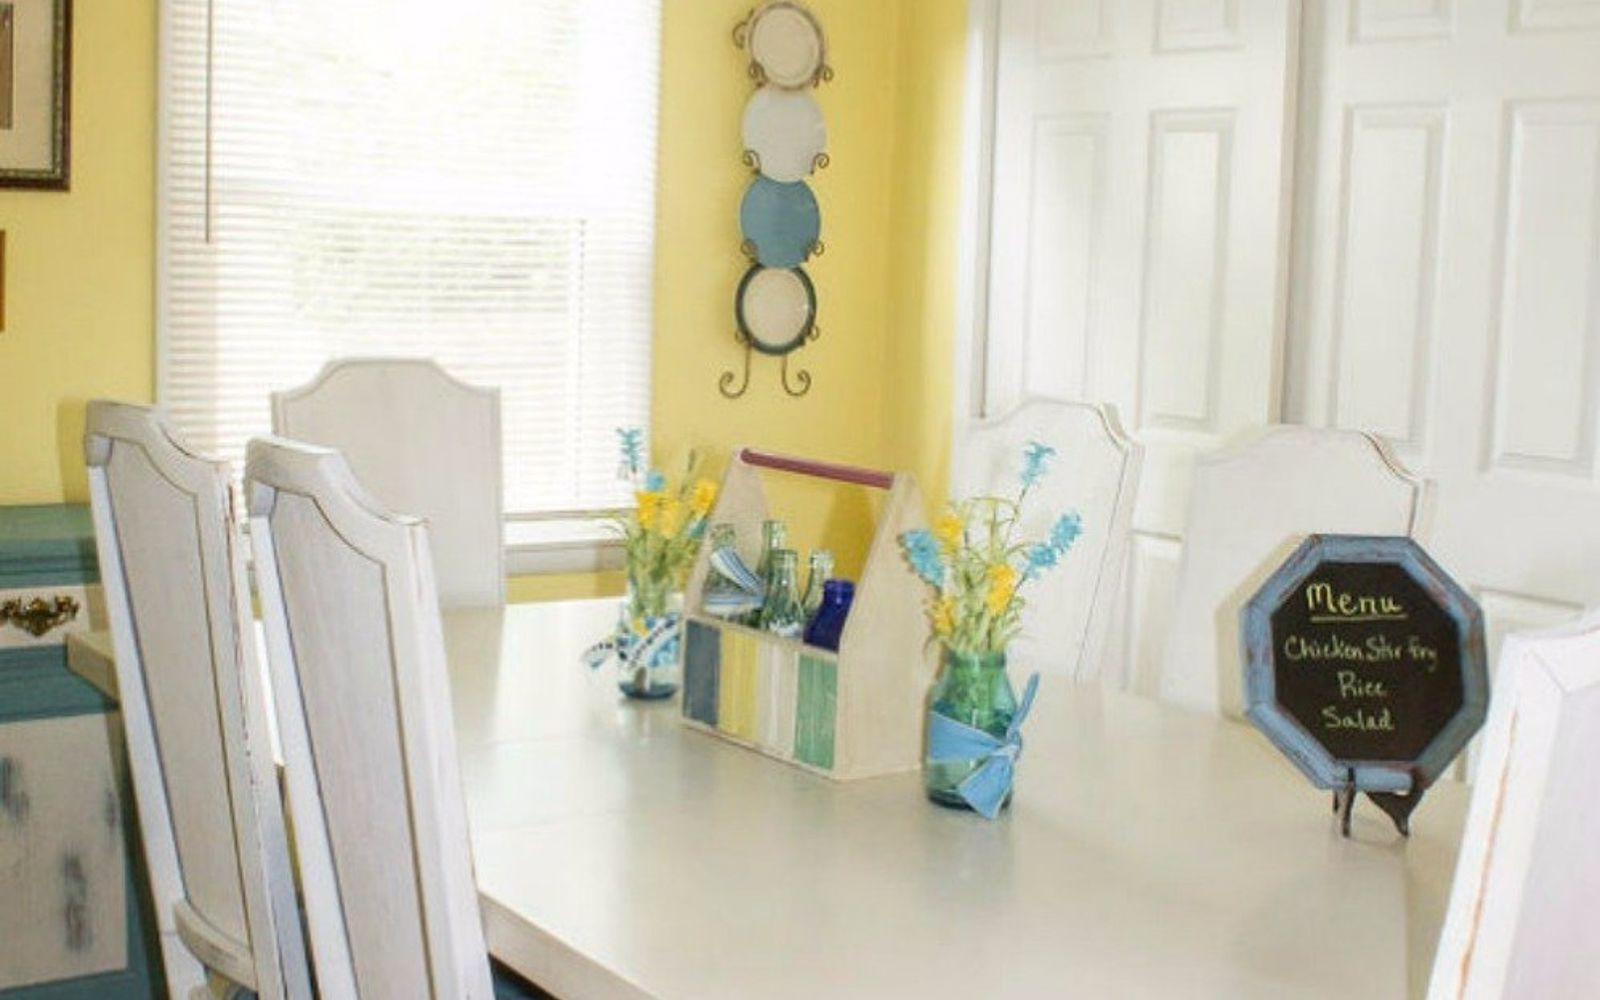 s 11 ways you never thought of using fabric in your kitchen, kitchen design, reupholster, As an improved bright window valance